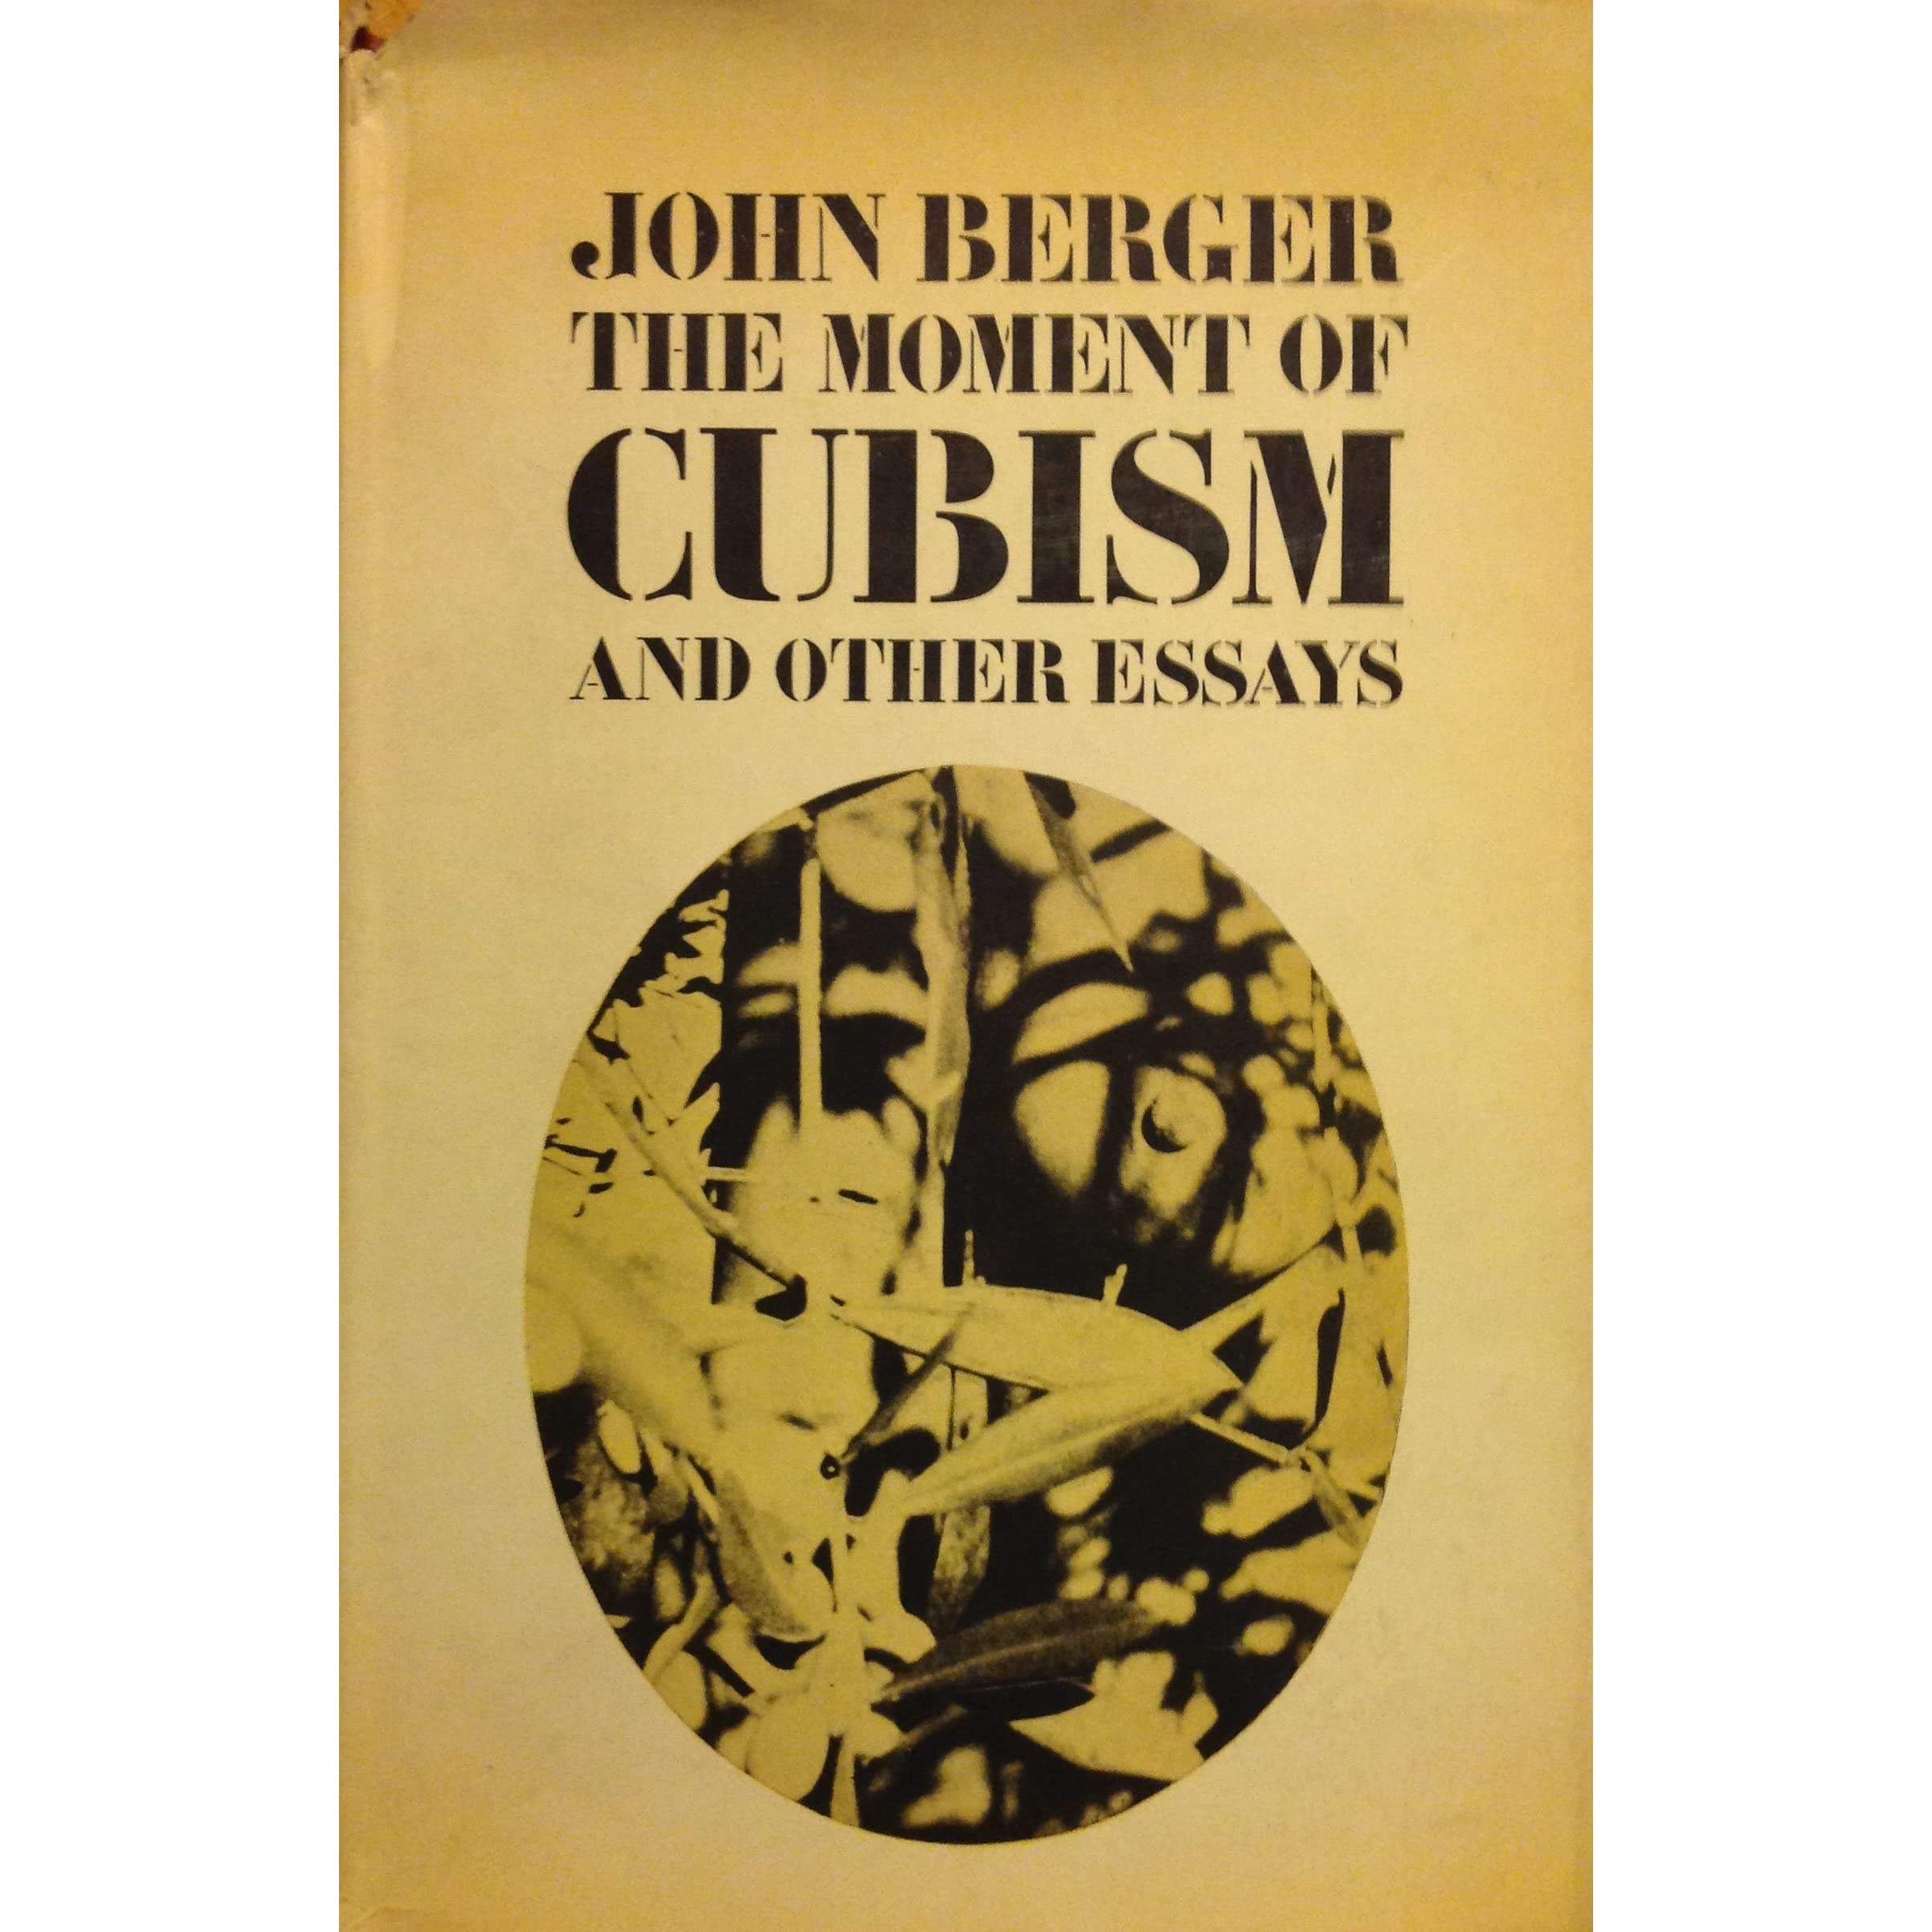 the moment of cubism and other essays by john berger reviews the moment of cubism and other essays by john berger reviews discussion bookclubs lists